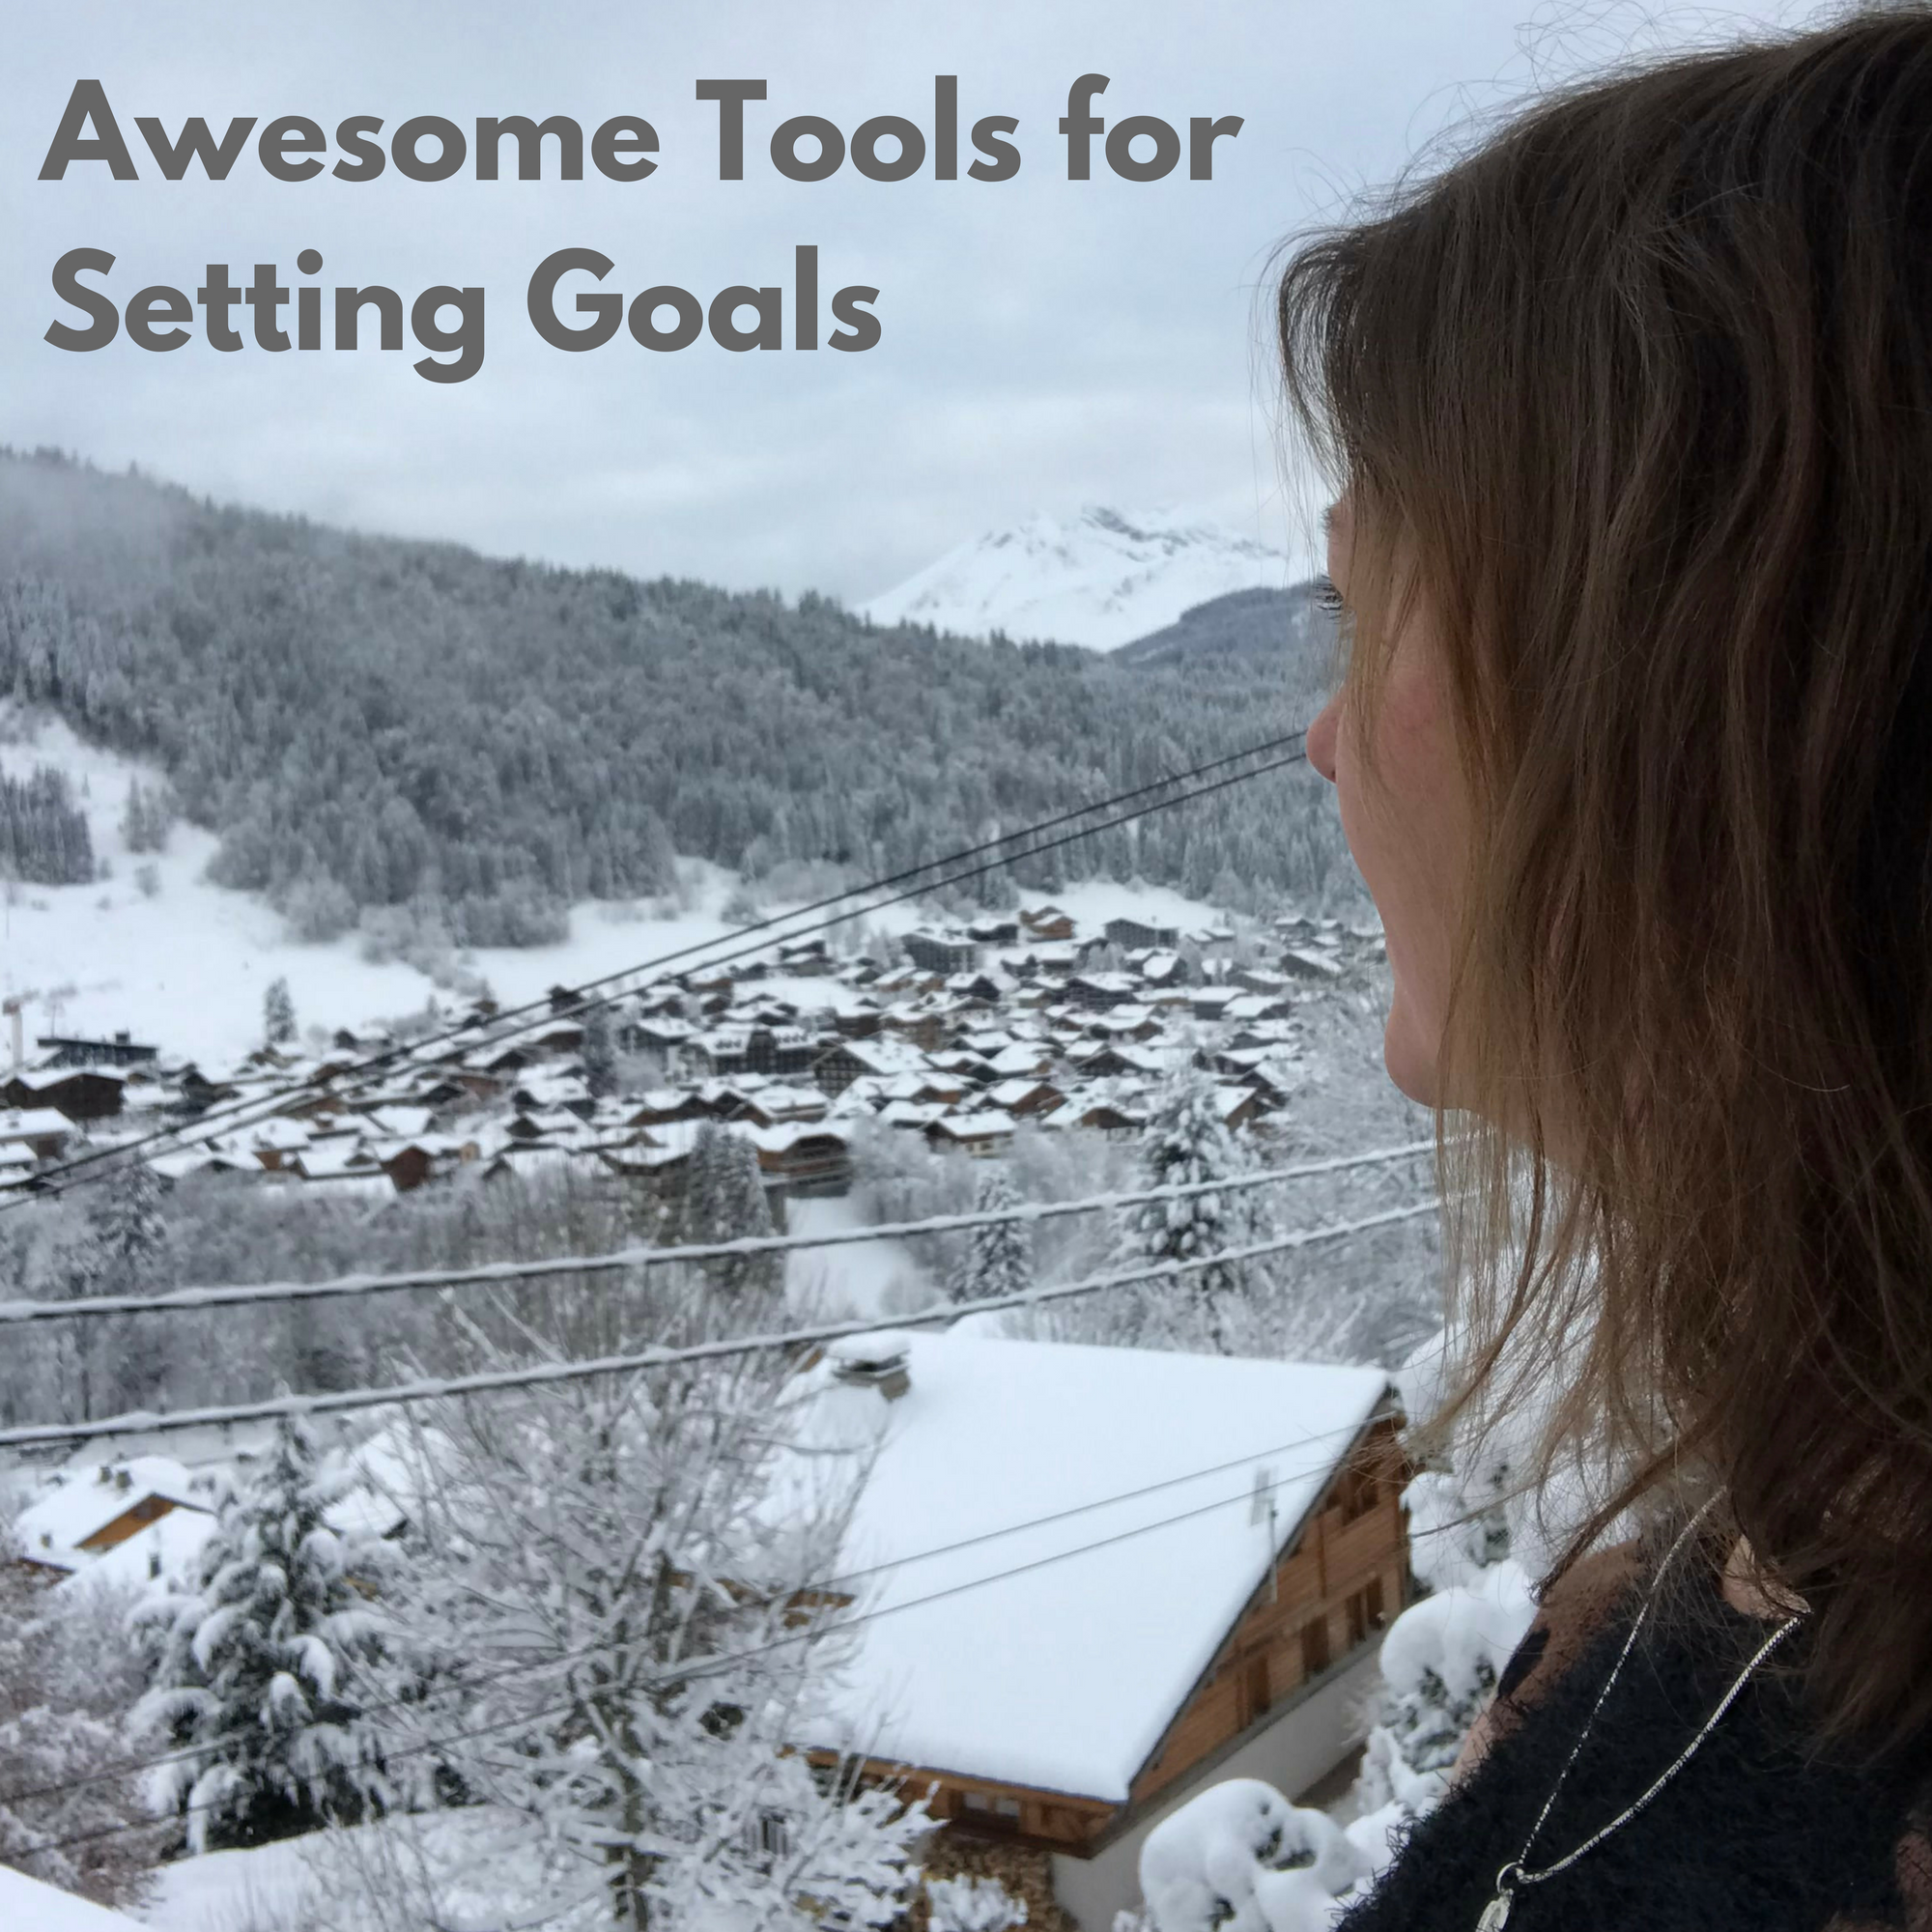 Awesome Tools for Setting Goals